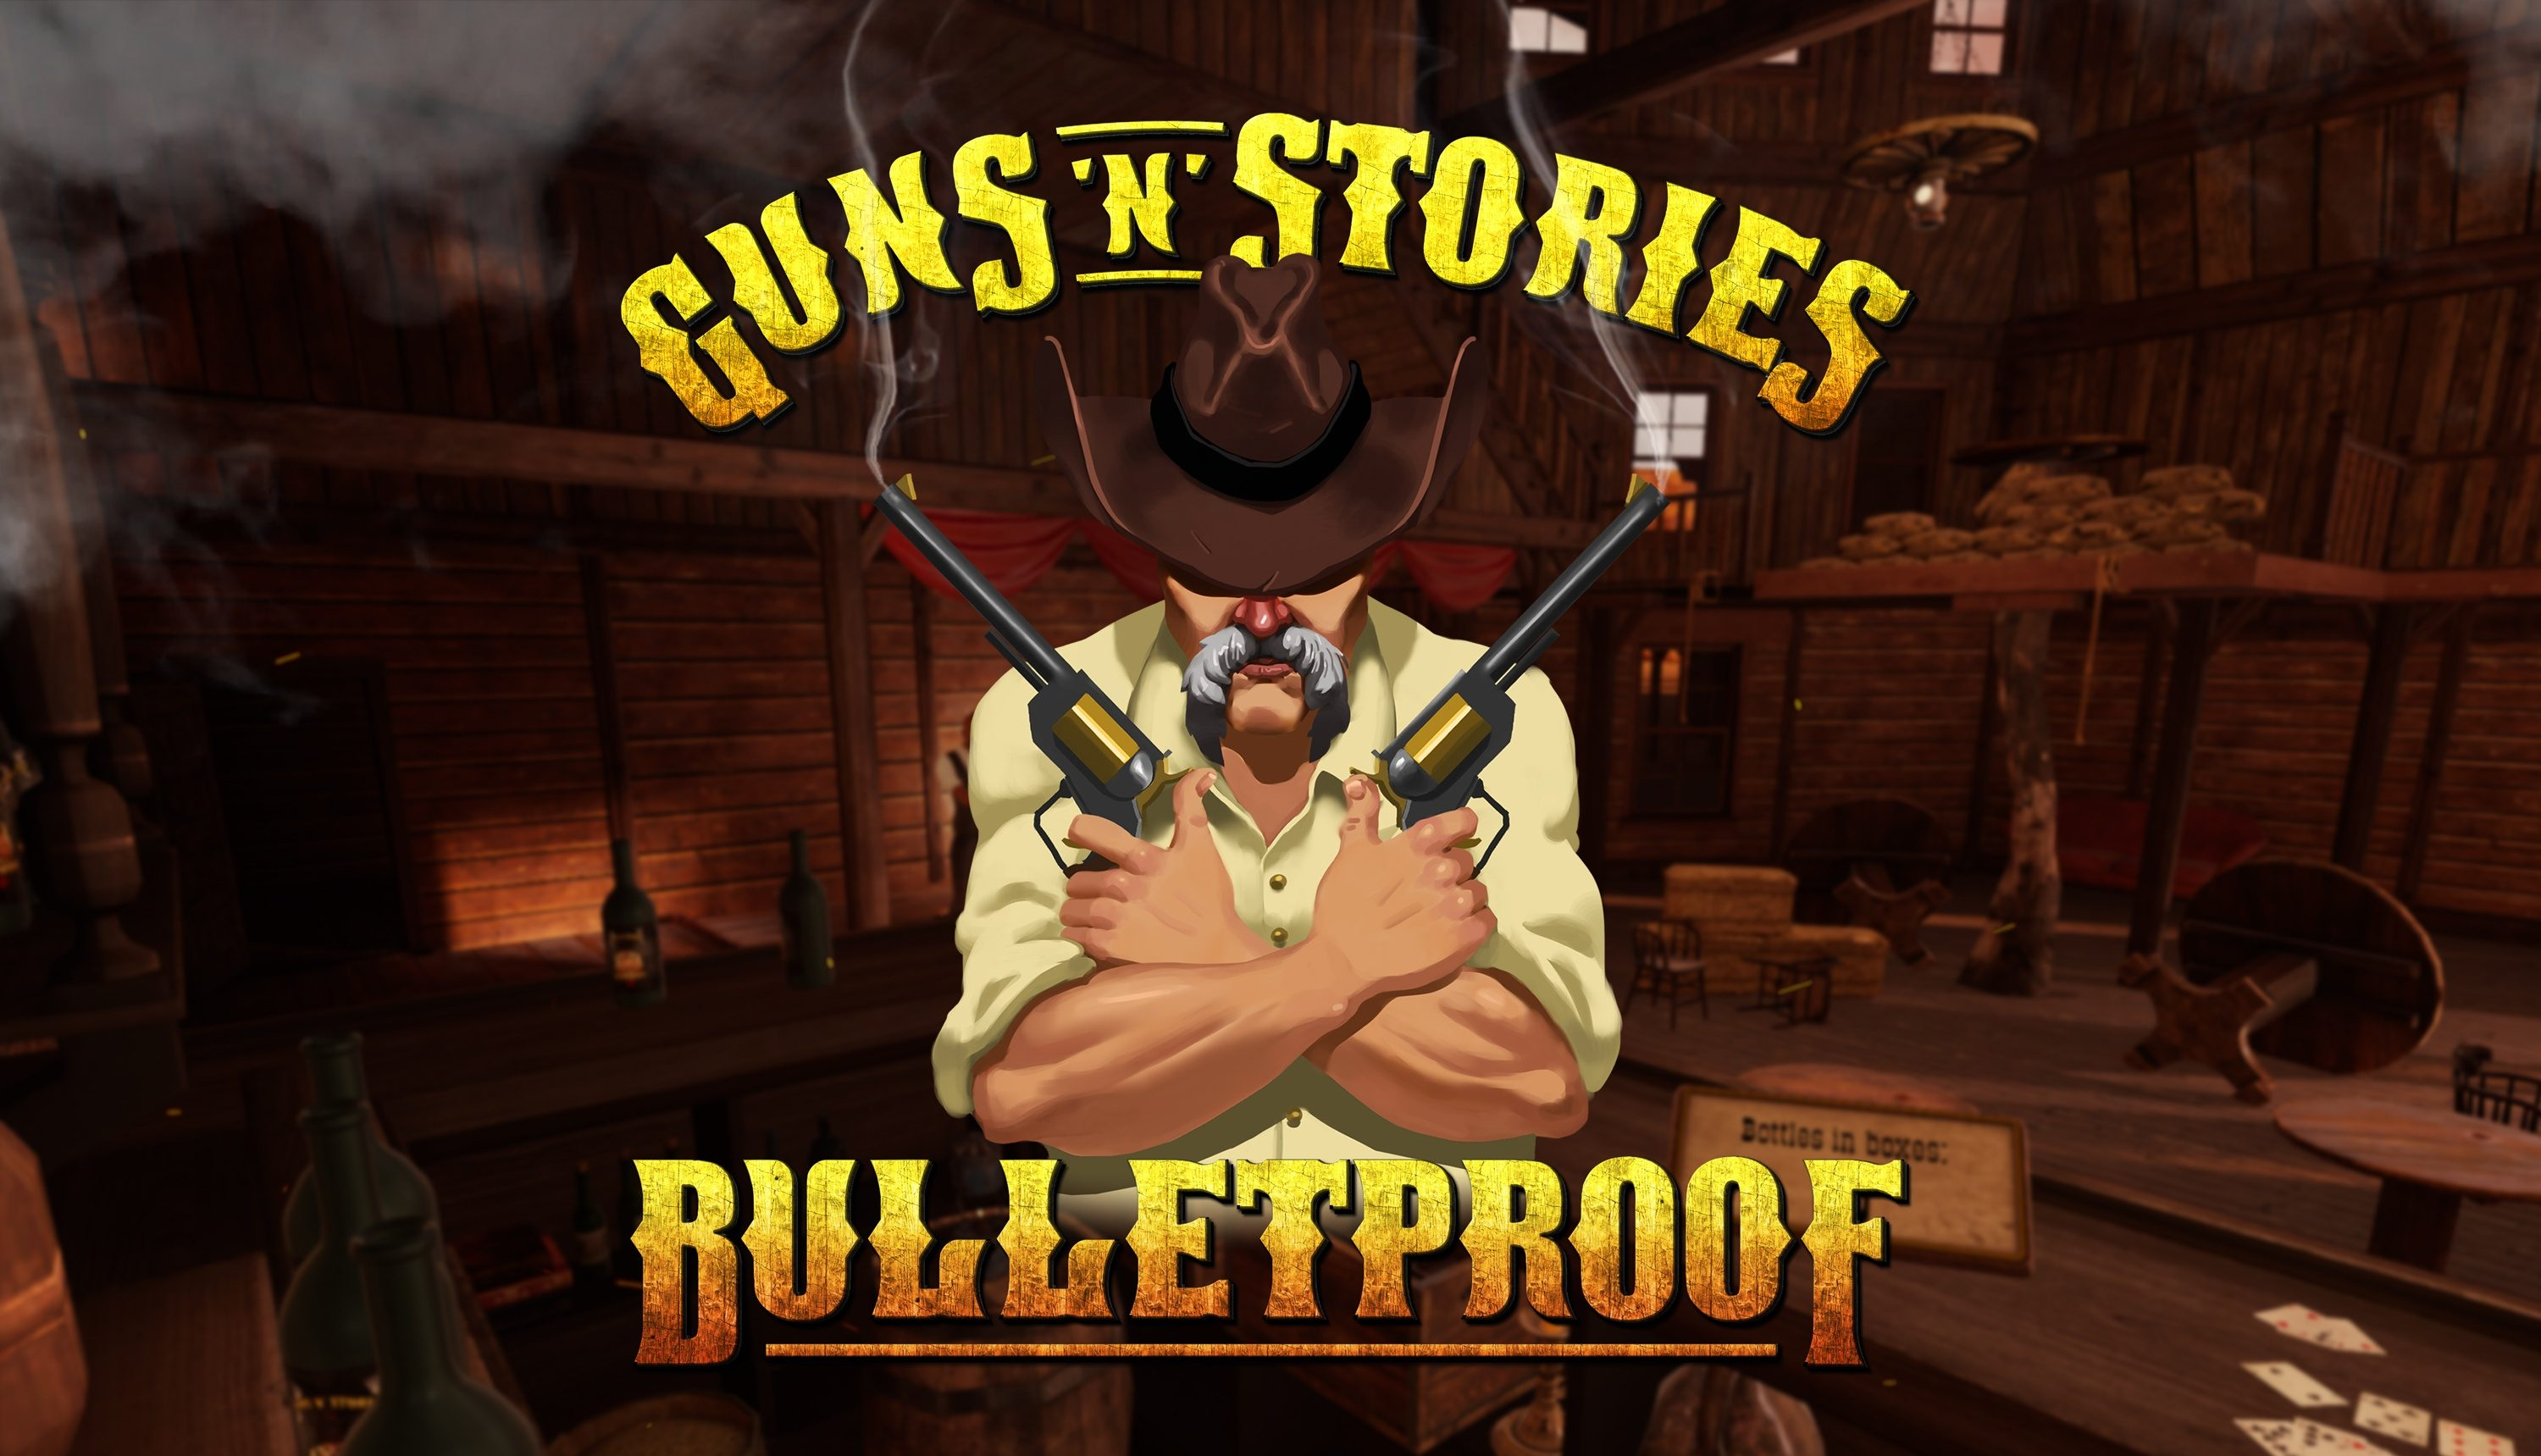 guns-n-stories-bulletproof photo